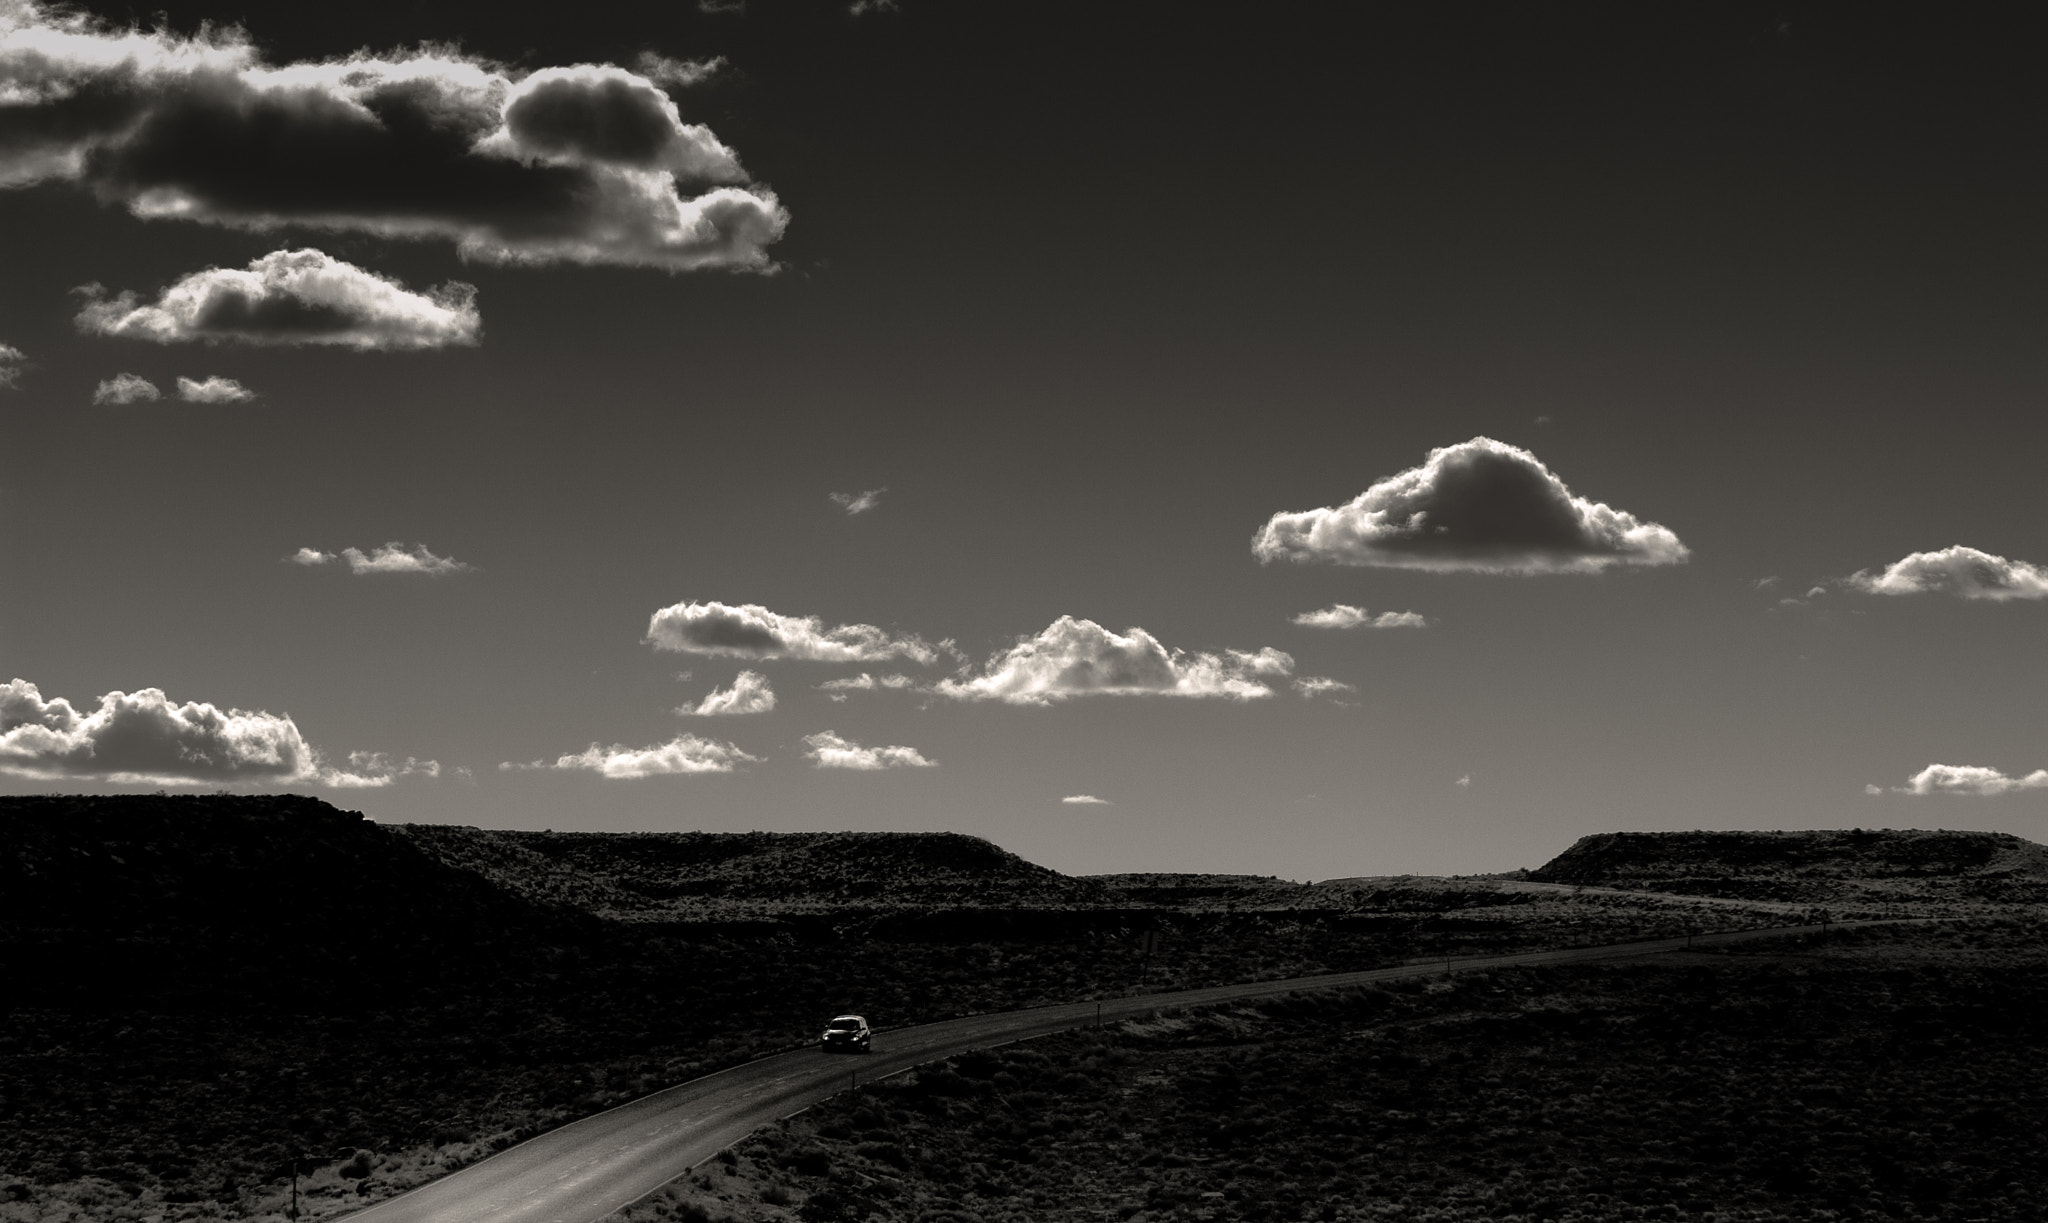 Photograph On the Road to Monument Valley by Keith Skelton on 500px